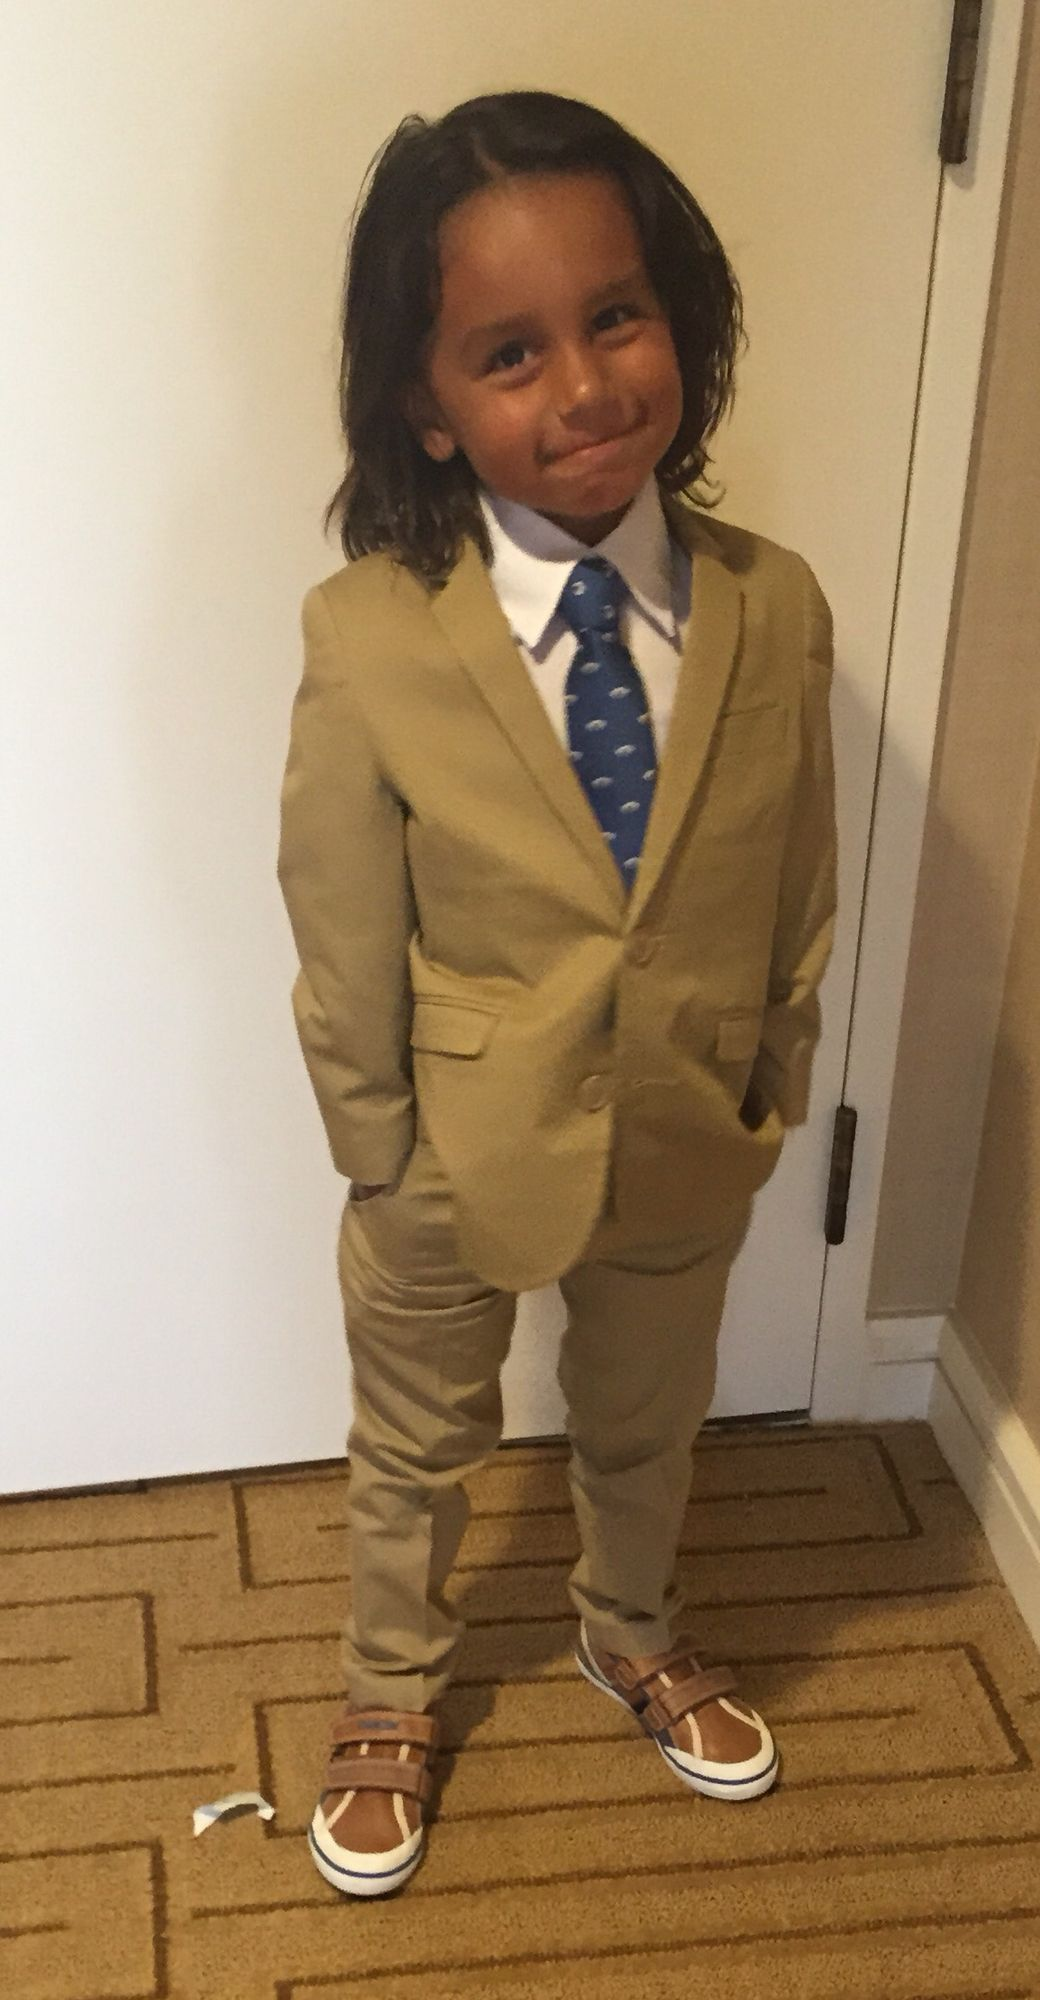 Adorable suit and tie for my 4-year-old grandson ordered via AMAZON!